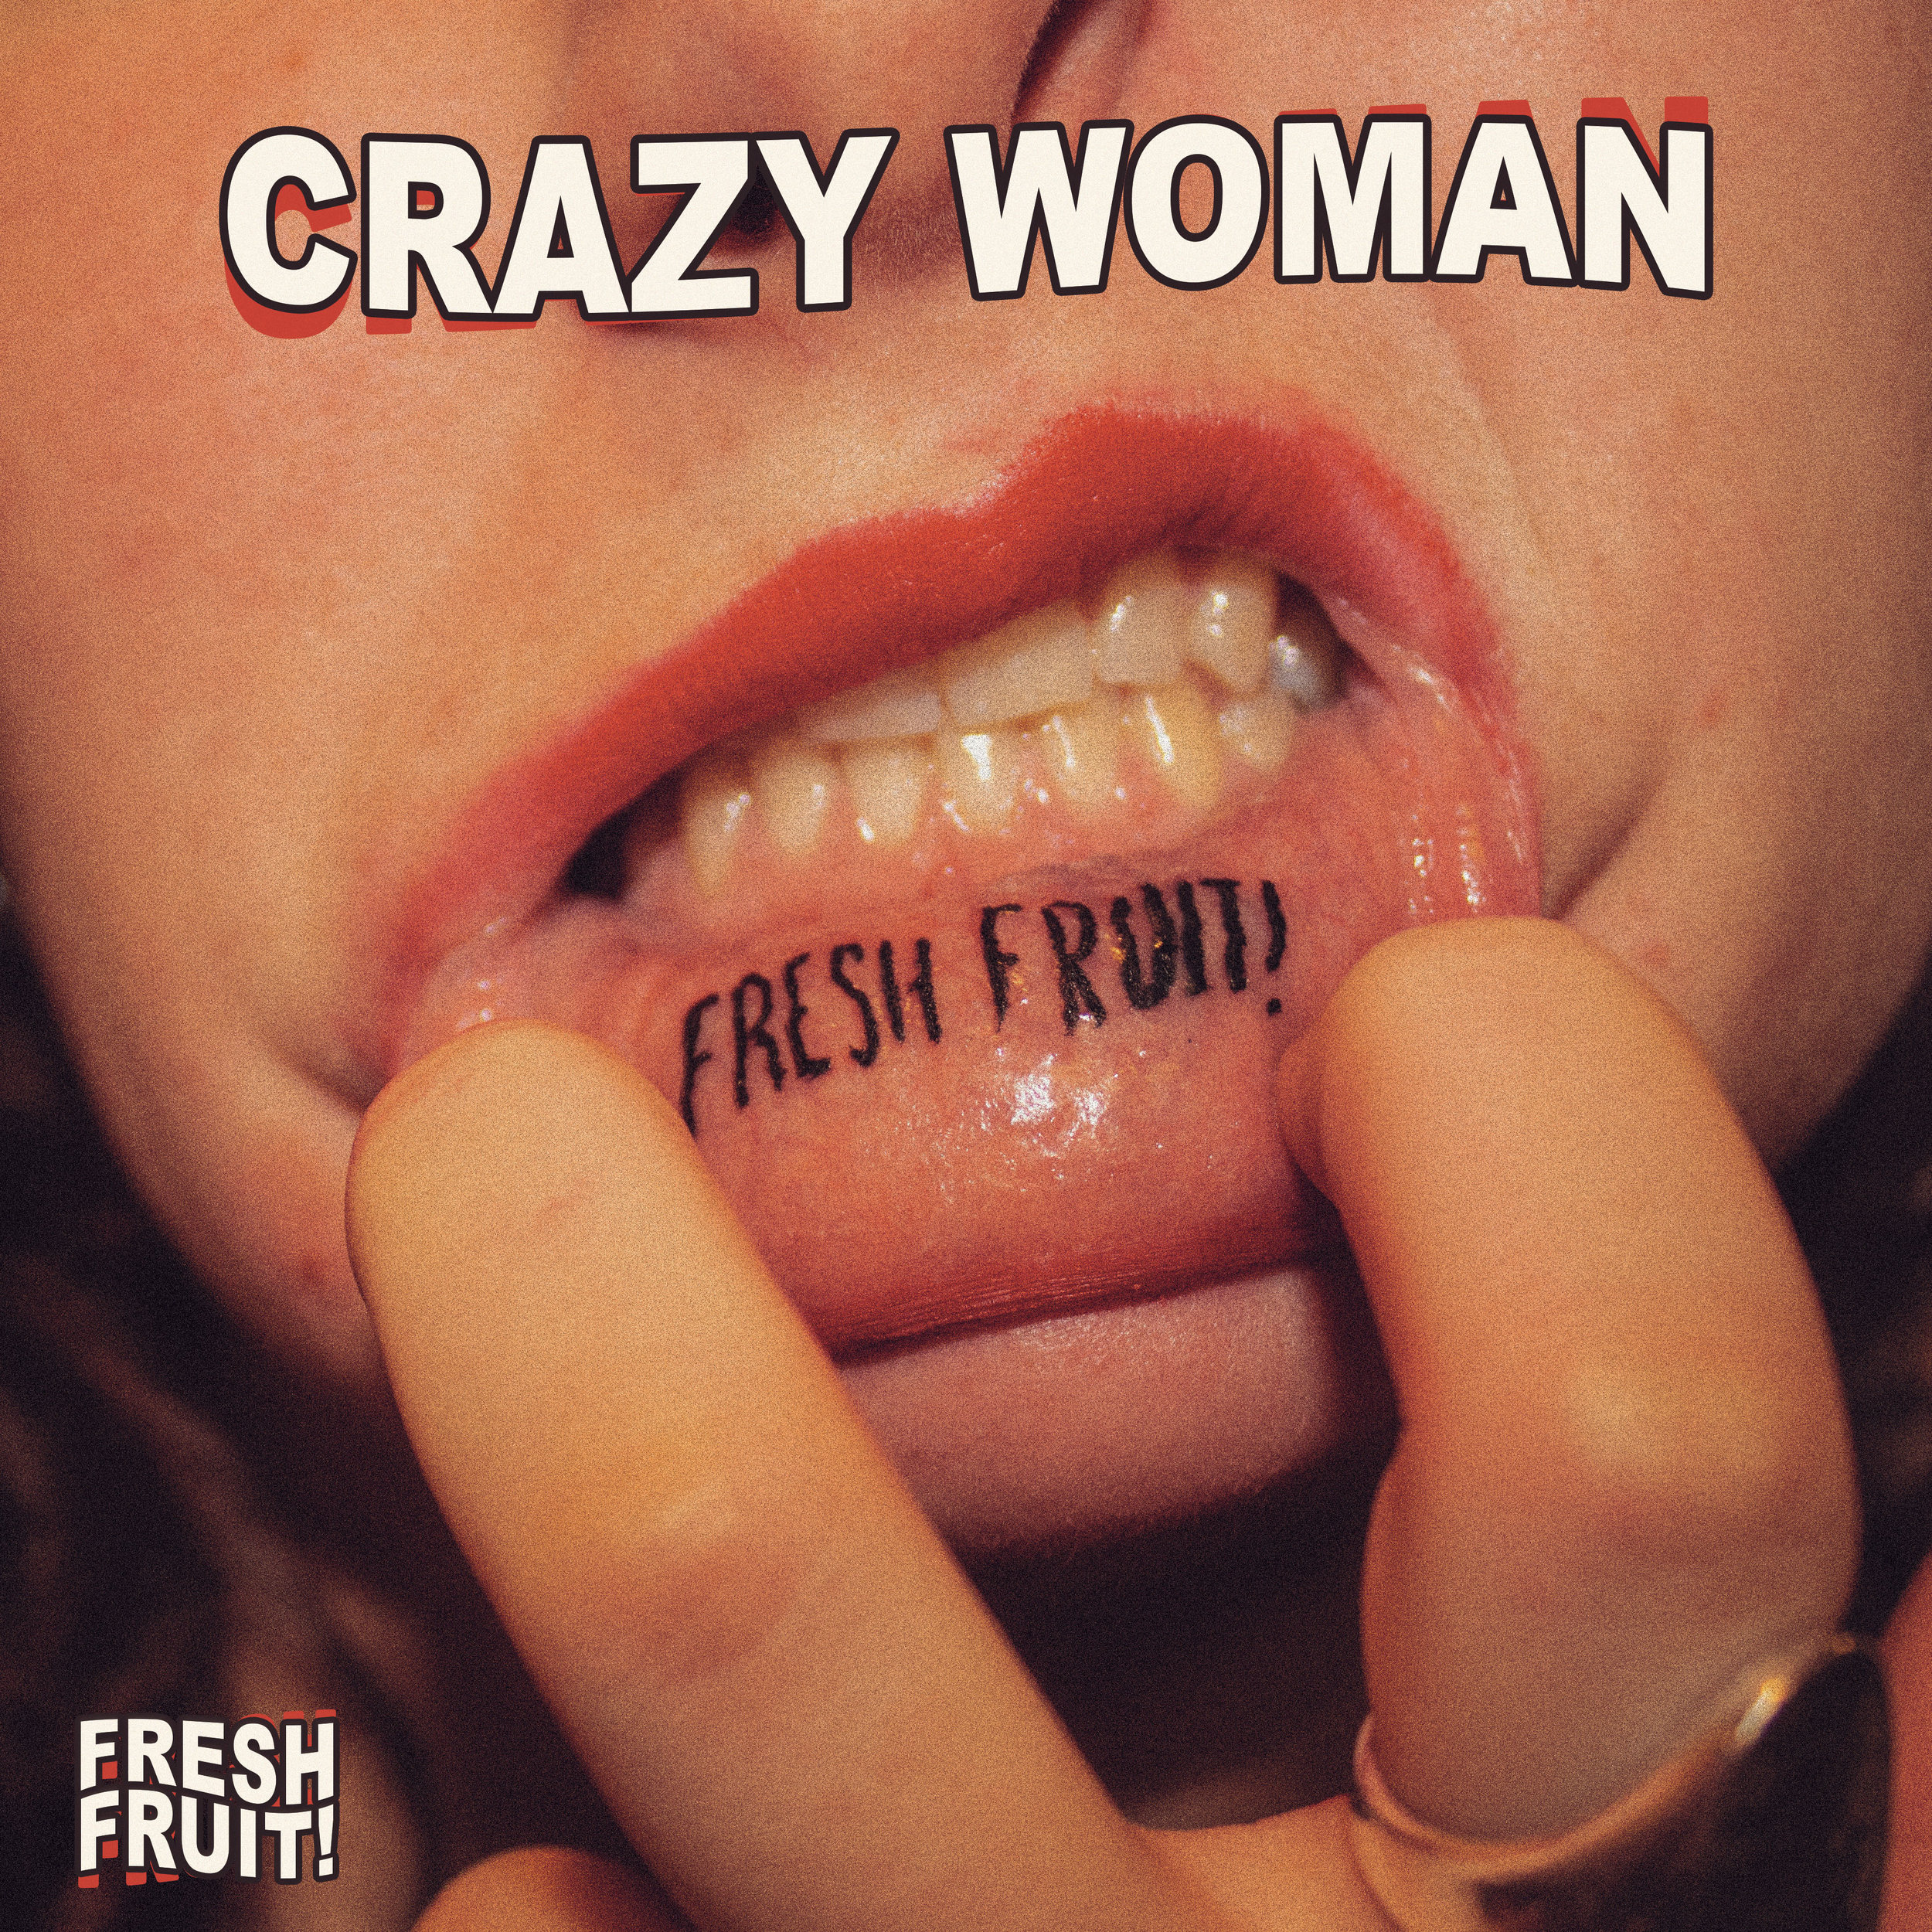 Crazy Woman Single Cover.jpg